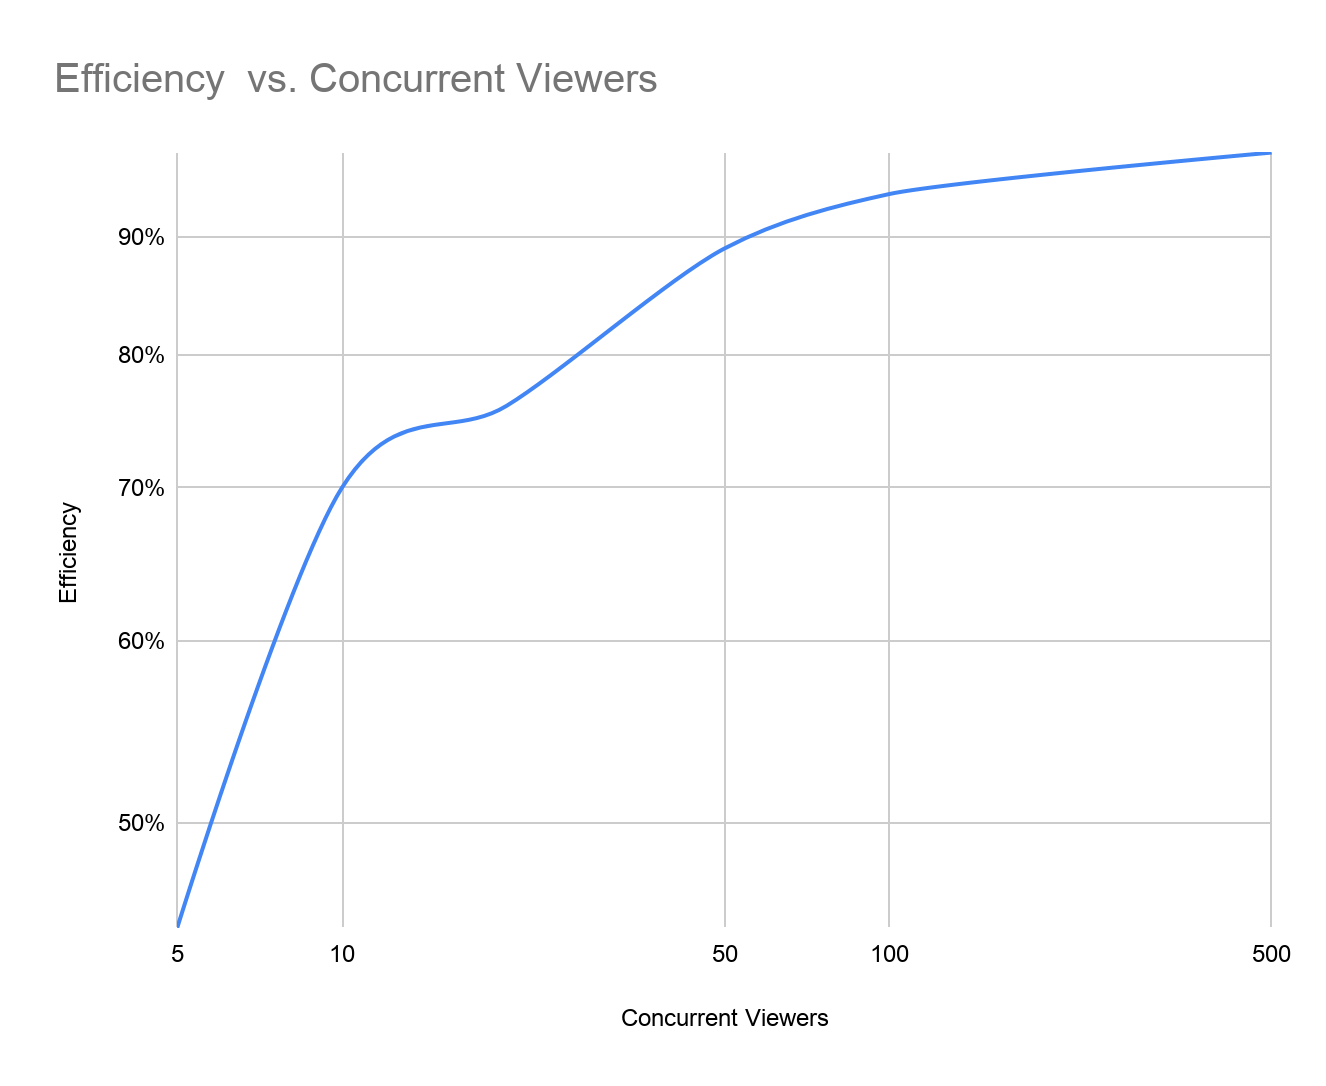 Efficiency vs. Concurrent Viewers